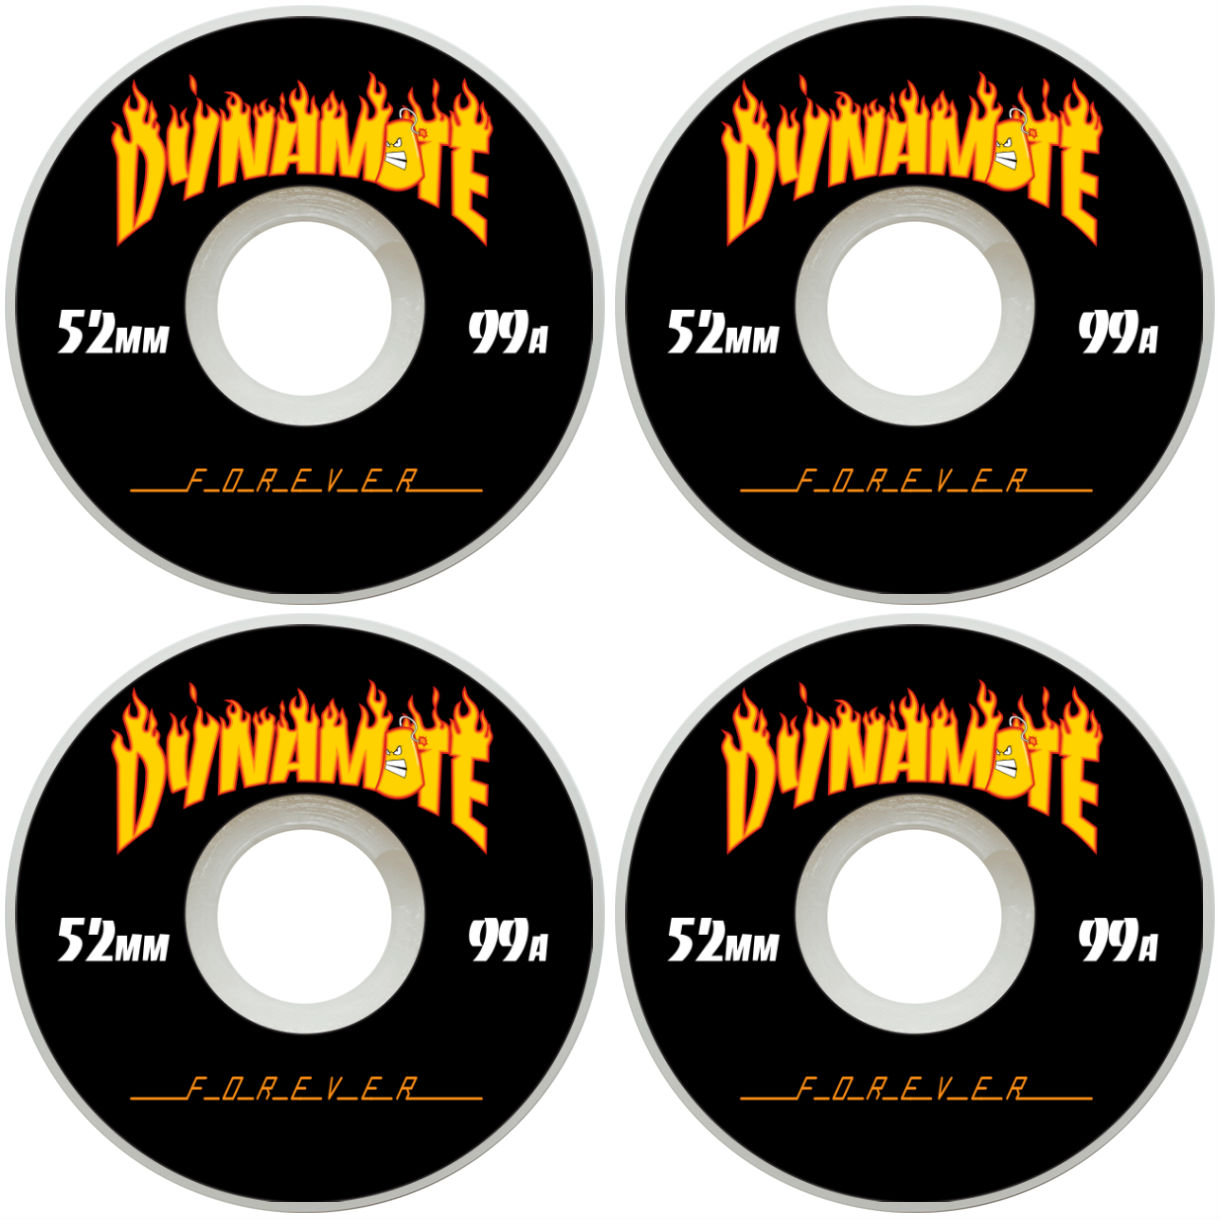 Dynamite Skateboard Wheels 52mm Thrashed Fire 99a New FREE POST